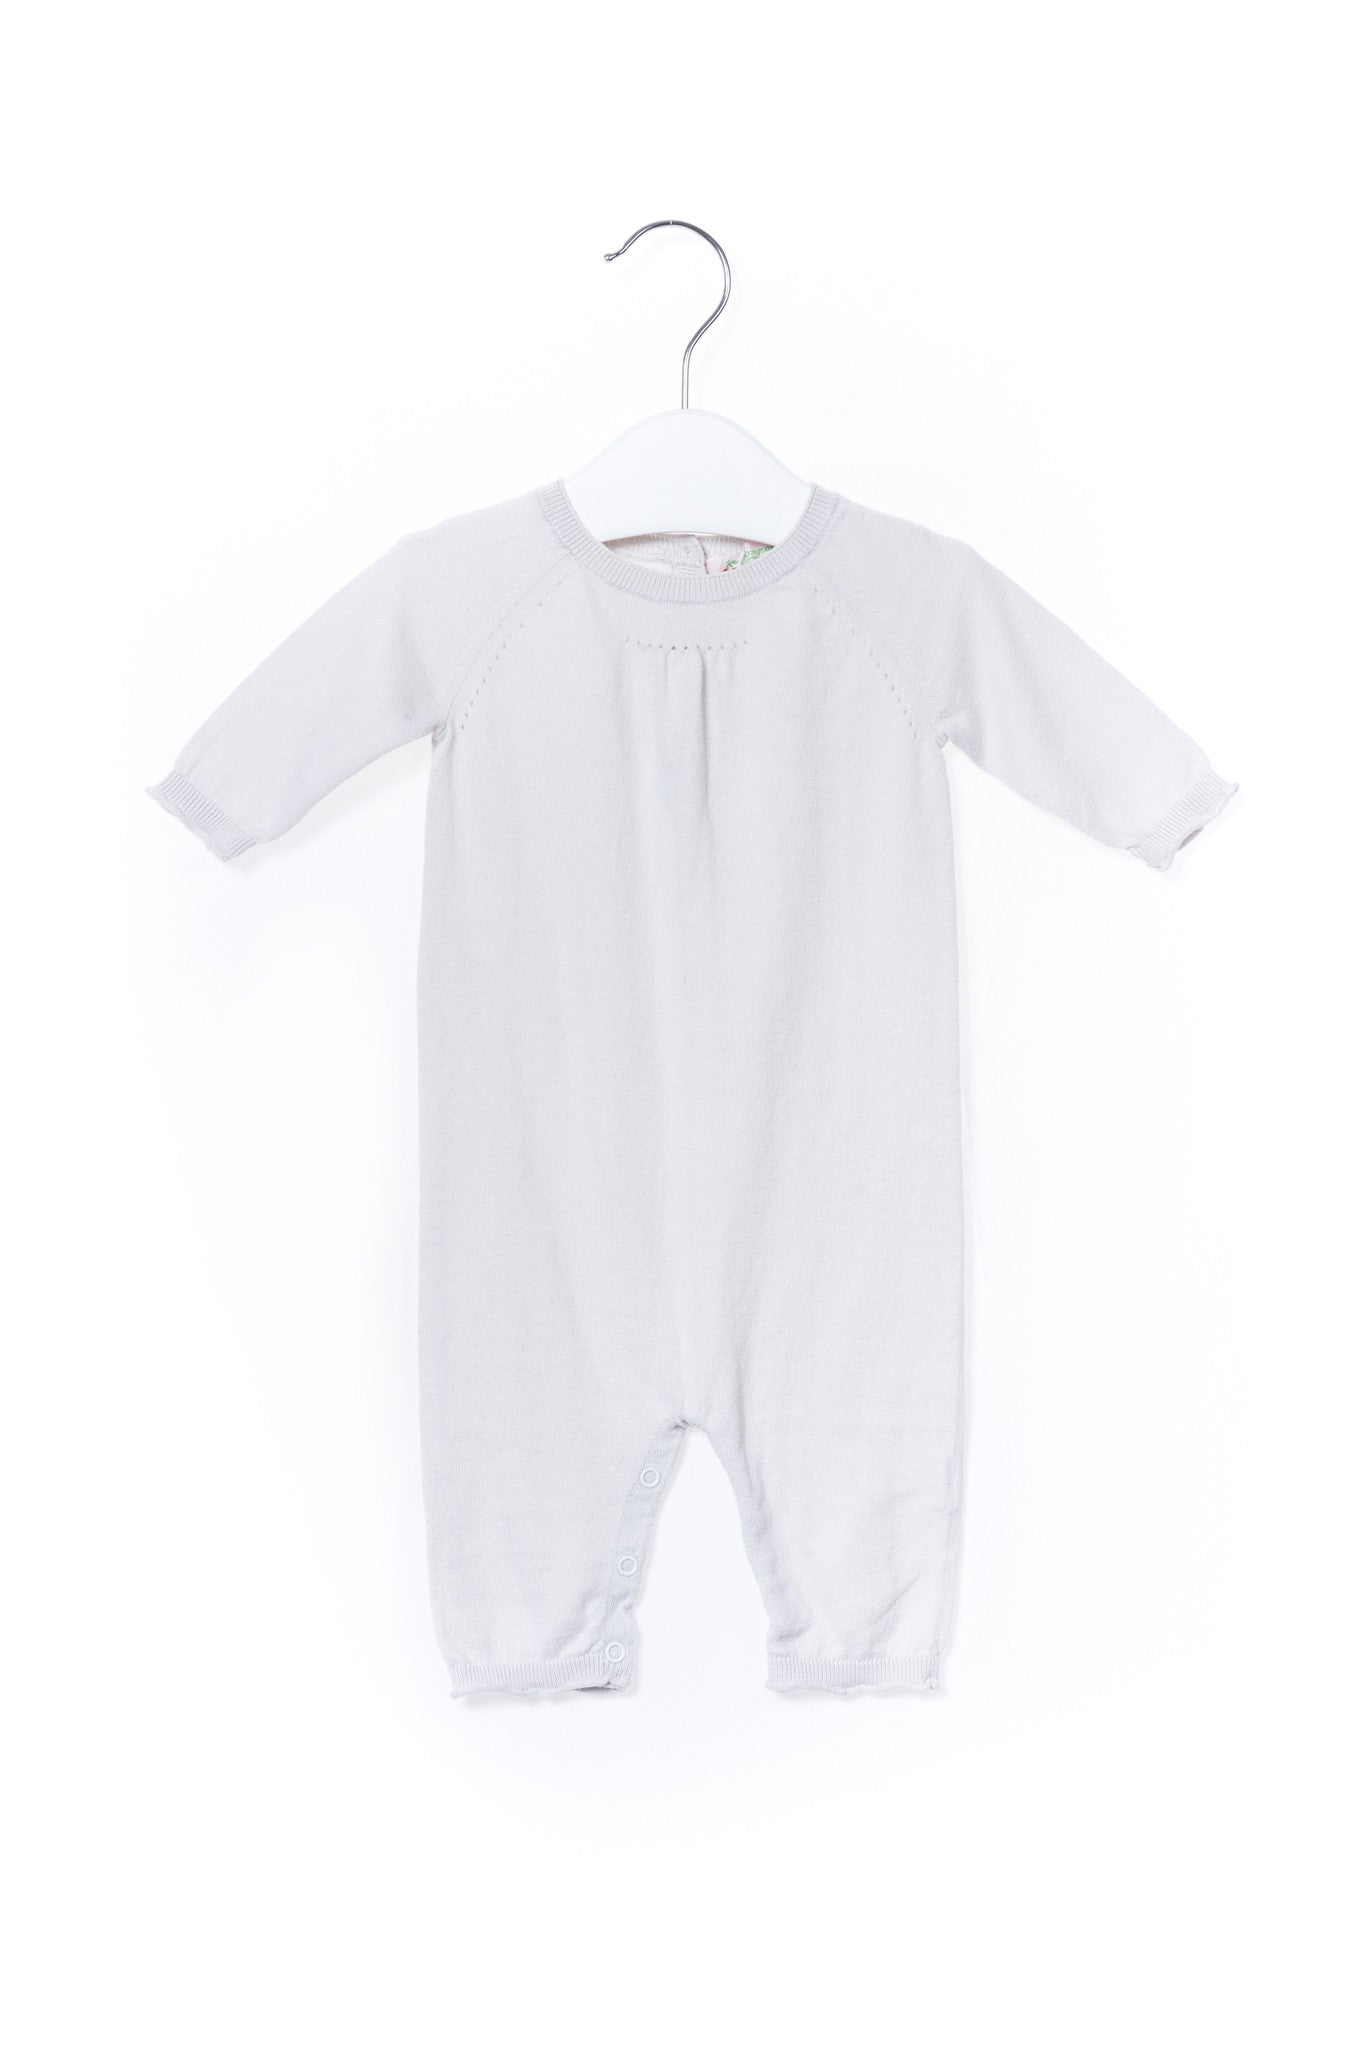 10001228~Jumpsuit NB, Bonpoint at Retykle - Online Baby & Kids Clothing Up to 90% Off